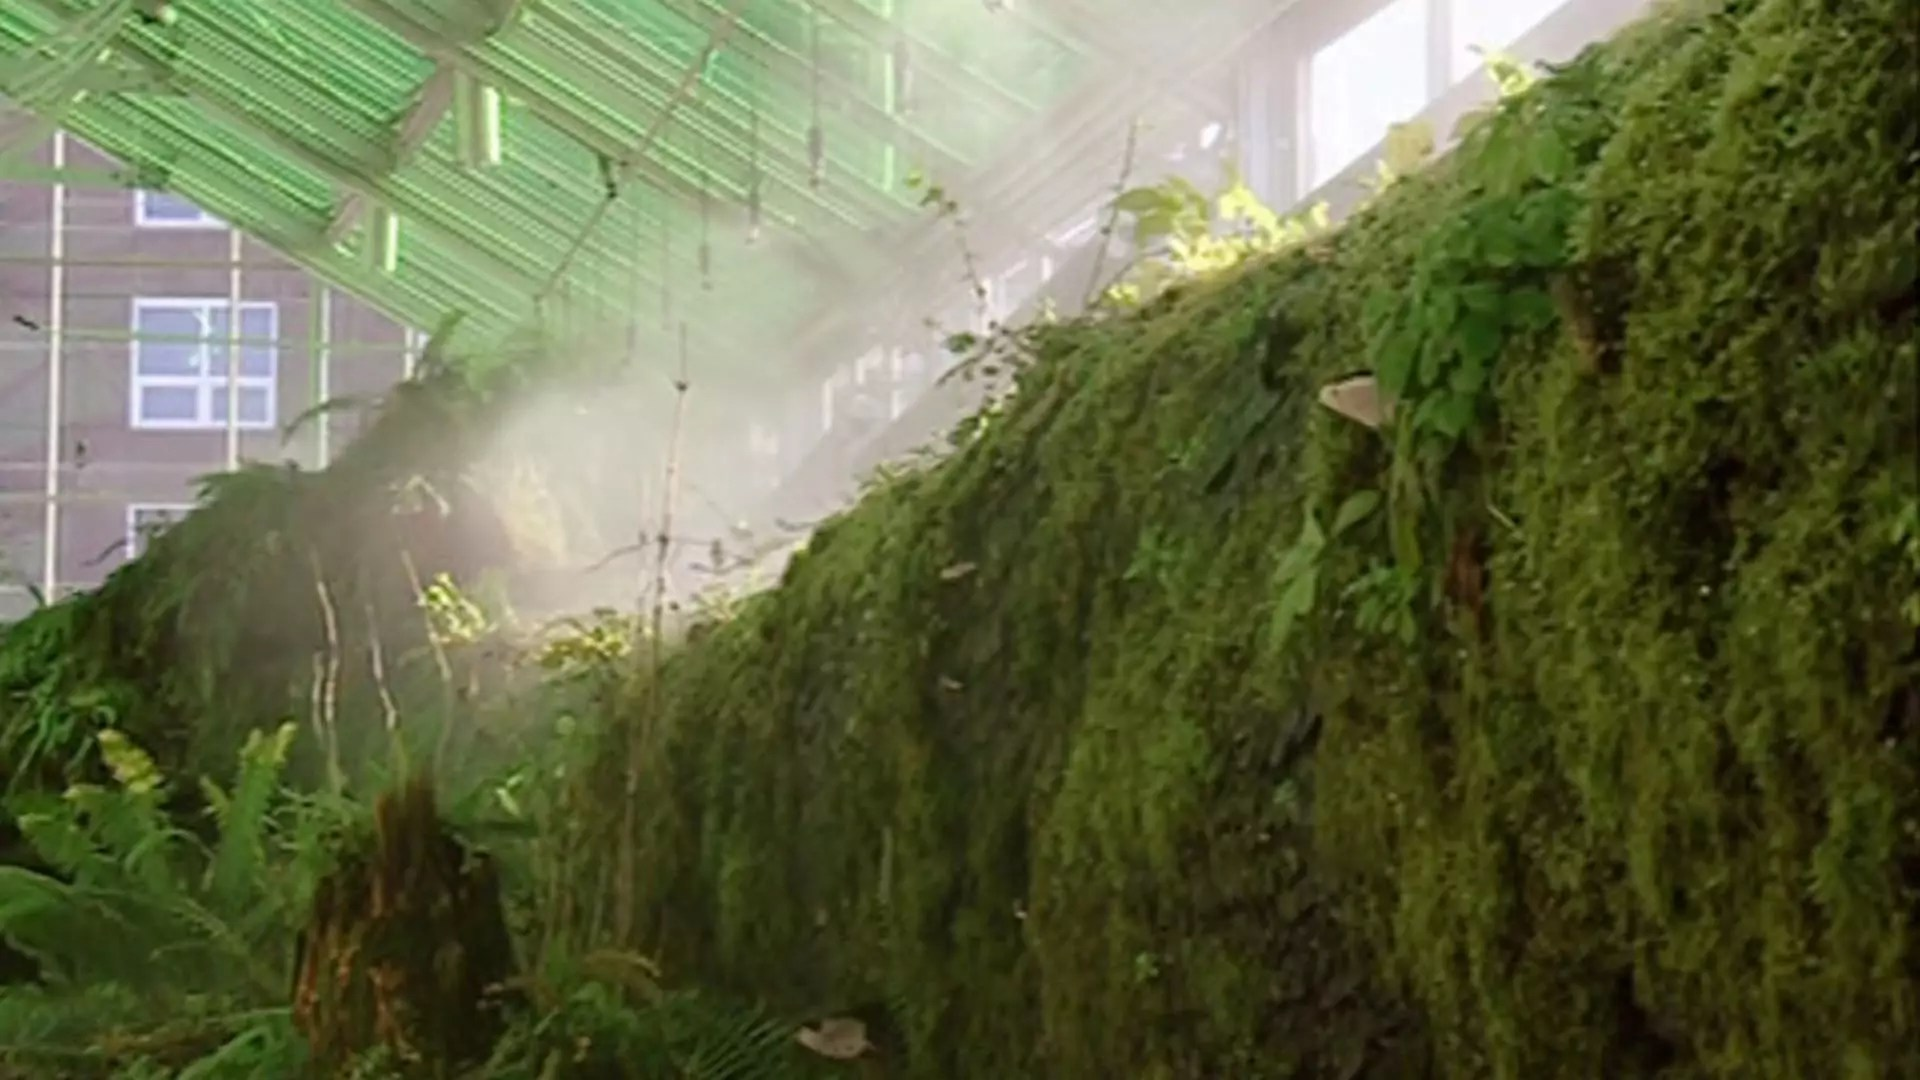 A group of moss and other greenery in a greenhouse.